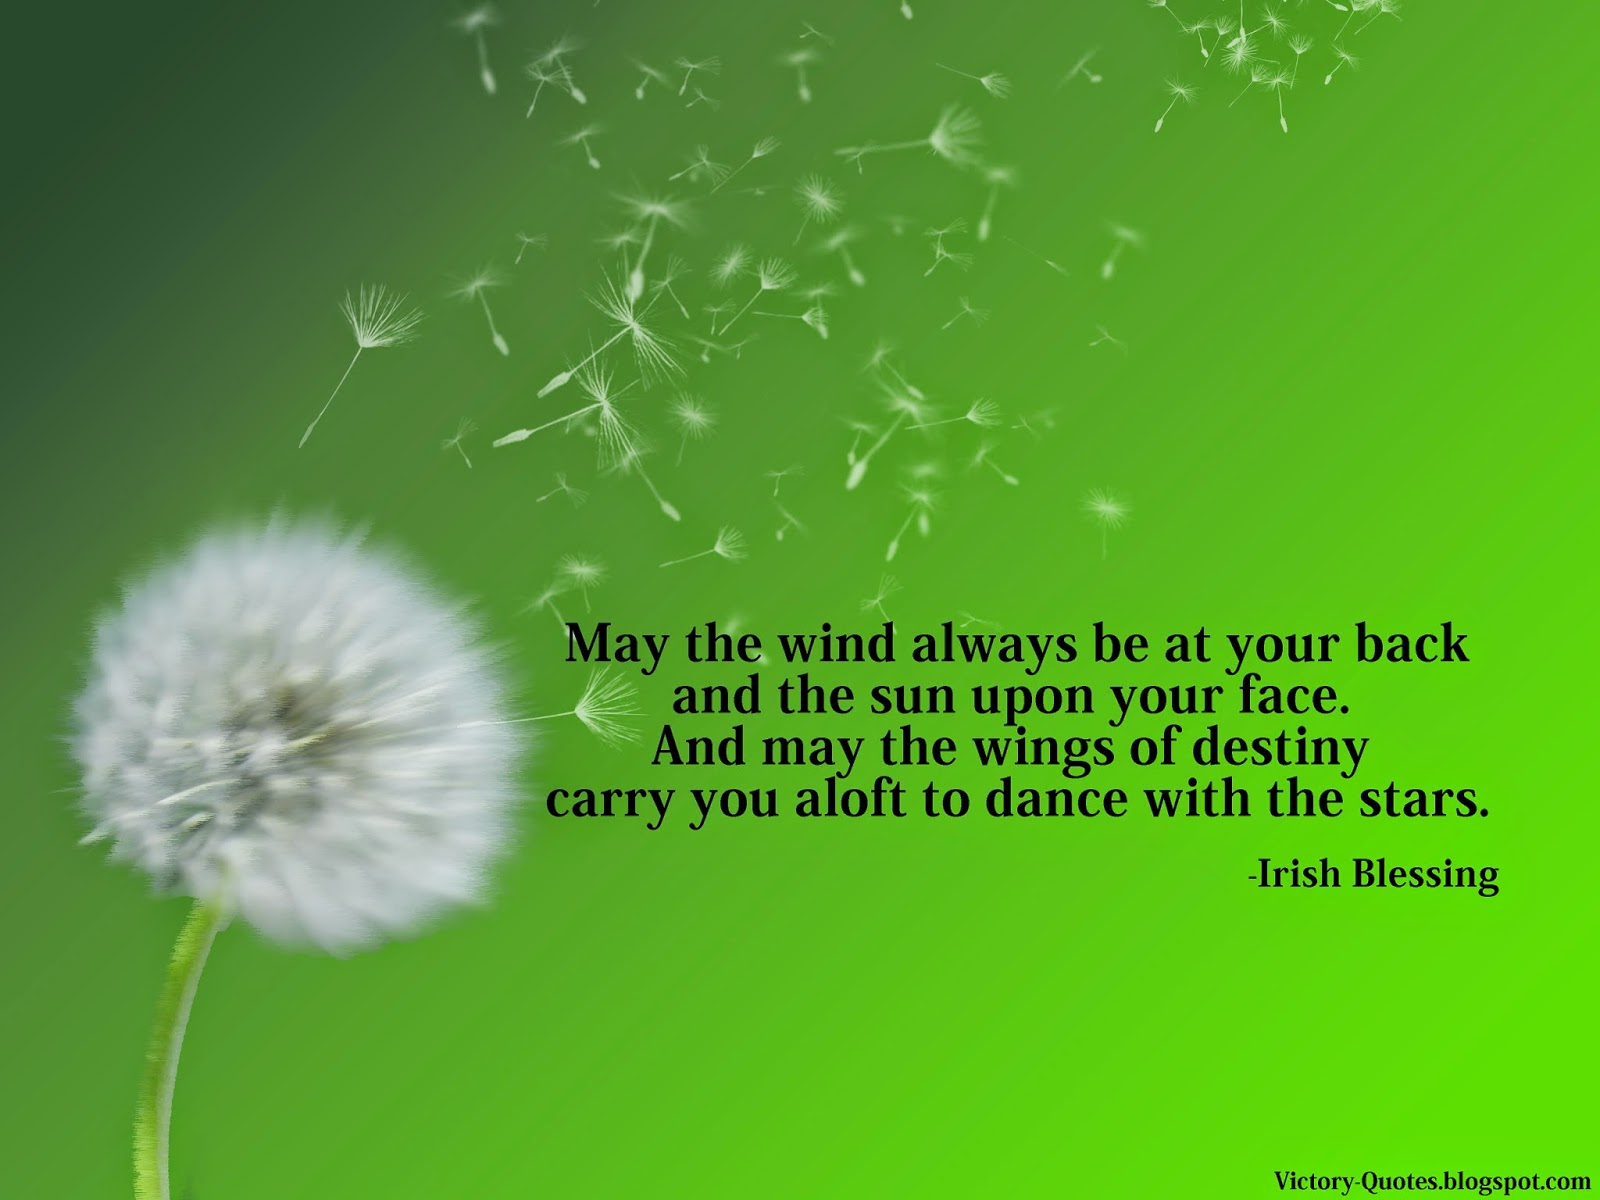 Victory Quotes May The Wind Always Be At Your Back